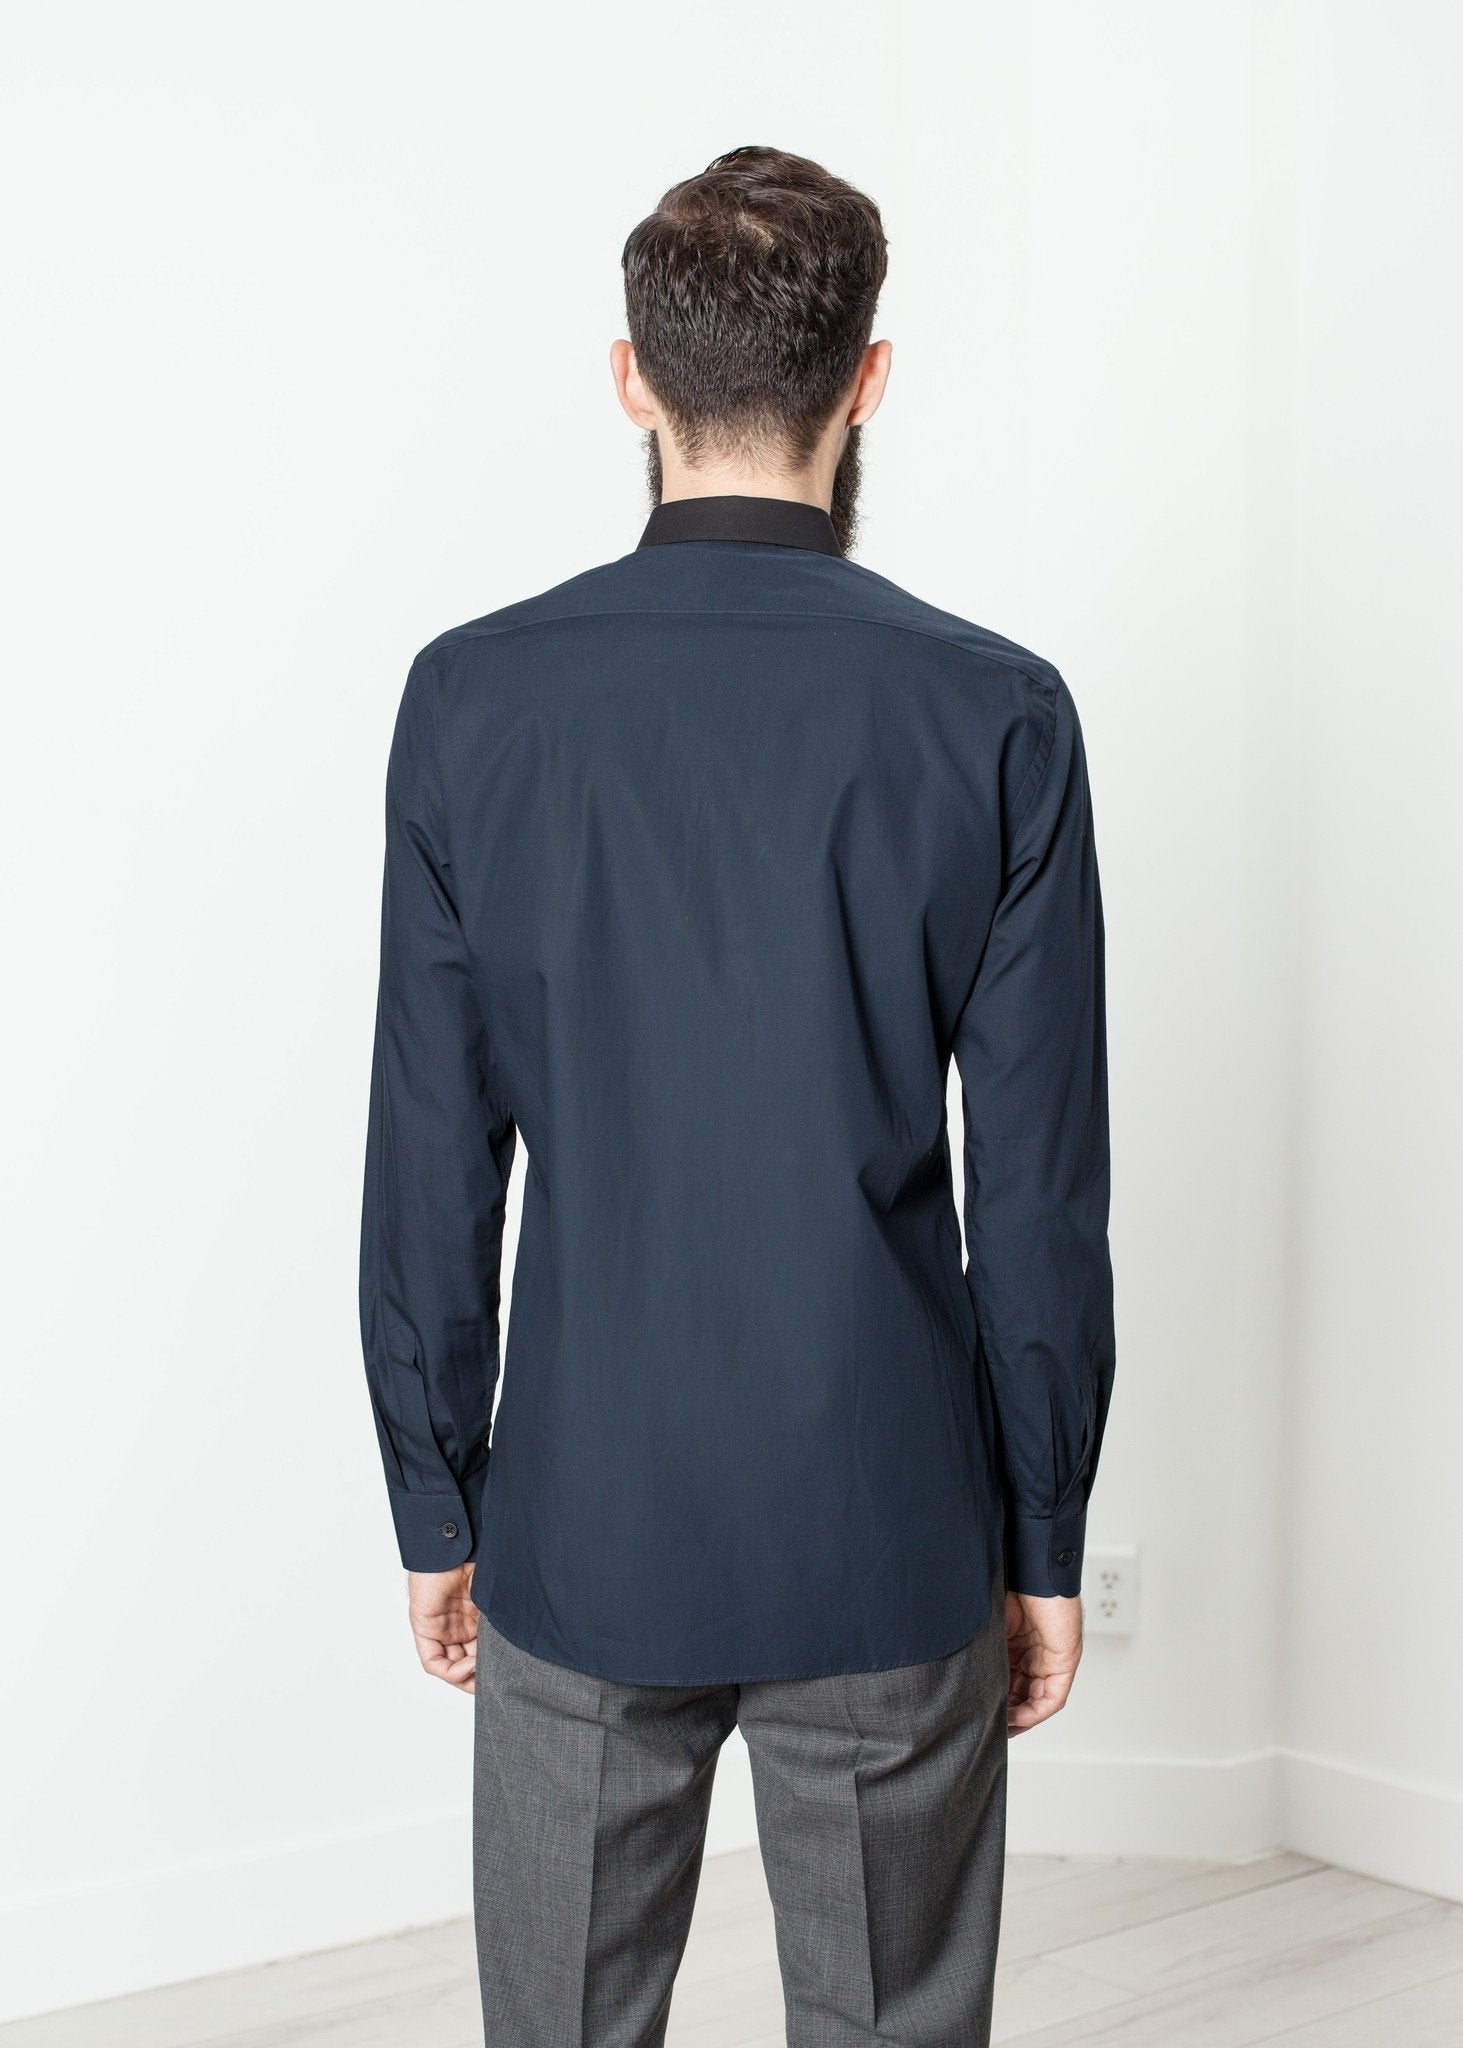 Camicia Classic Shirt in Navy